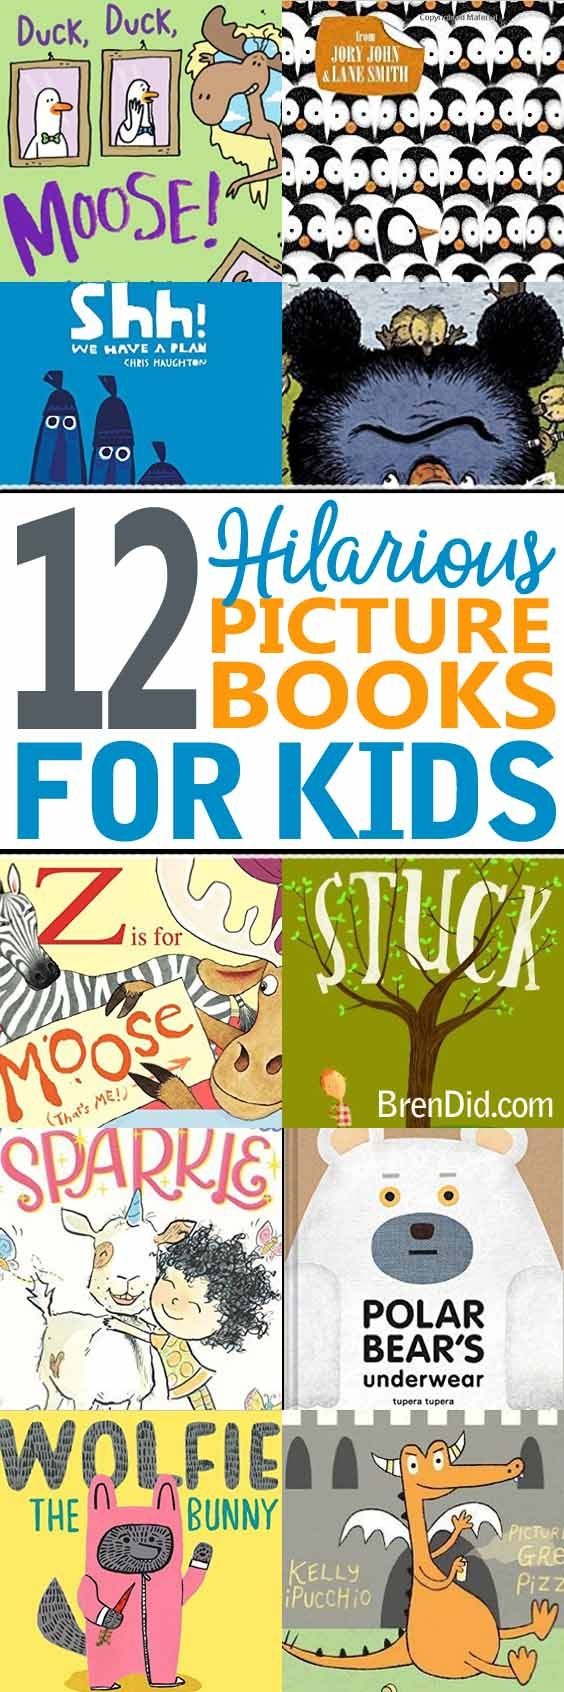 12 Hilarious Picture Books For Kids Childrens Books